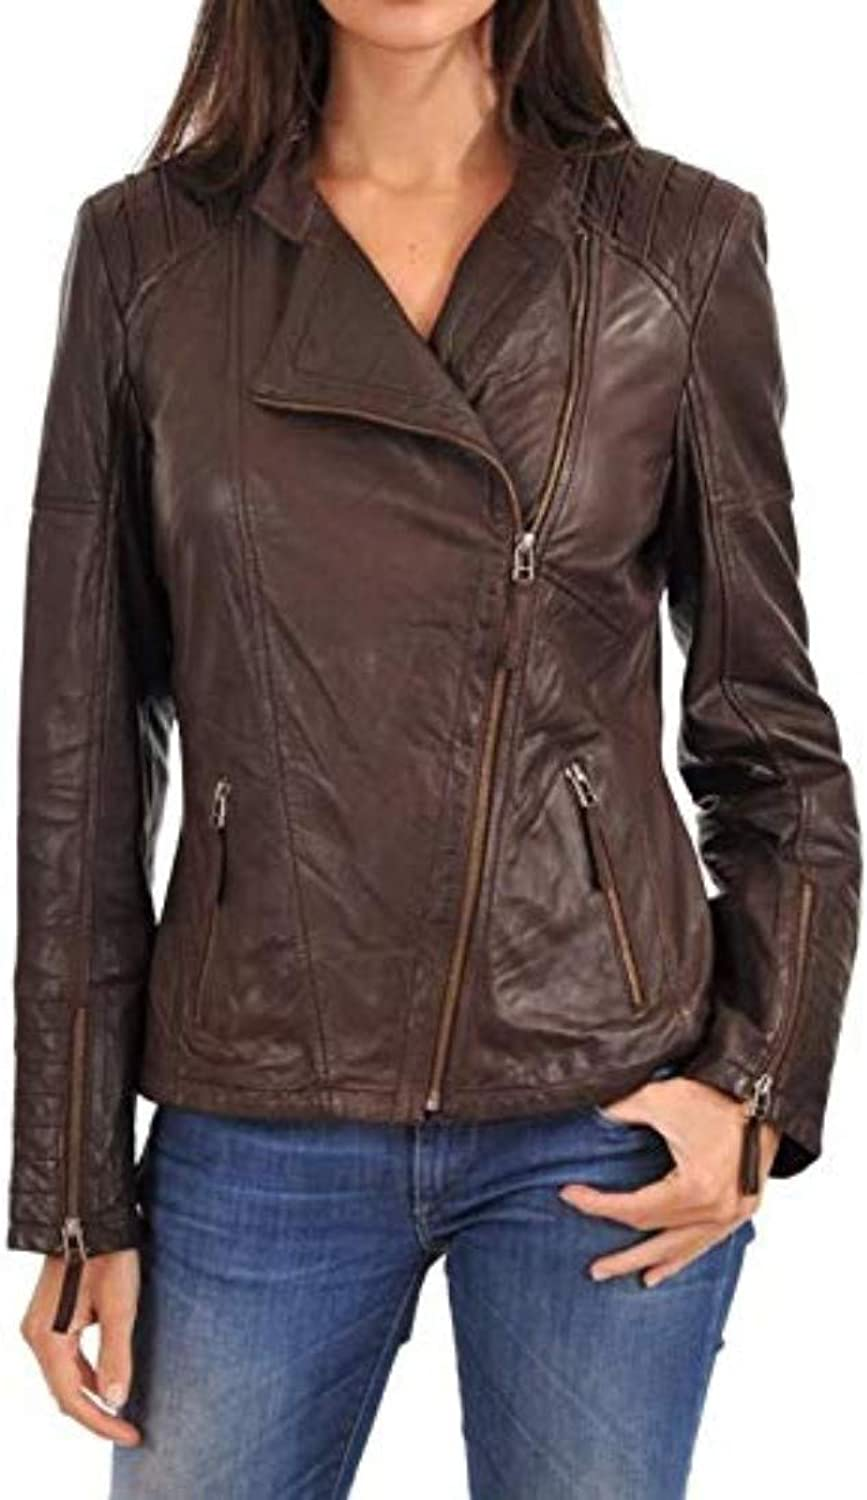 New Fashion Style Women's Leather Jackets Dark Brown D64_